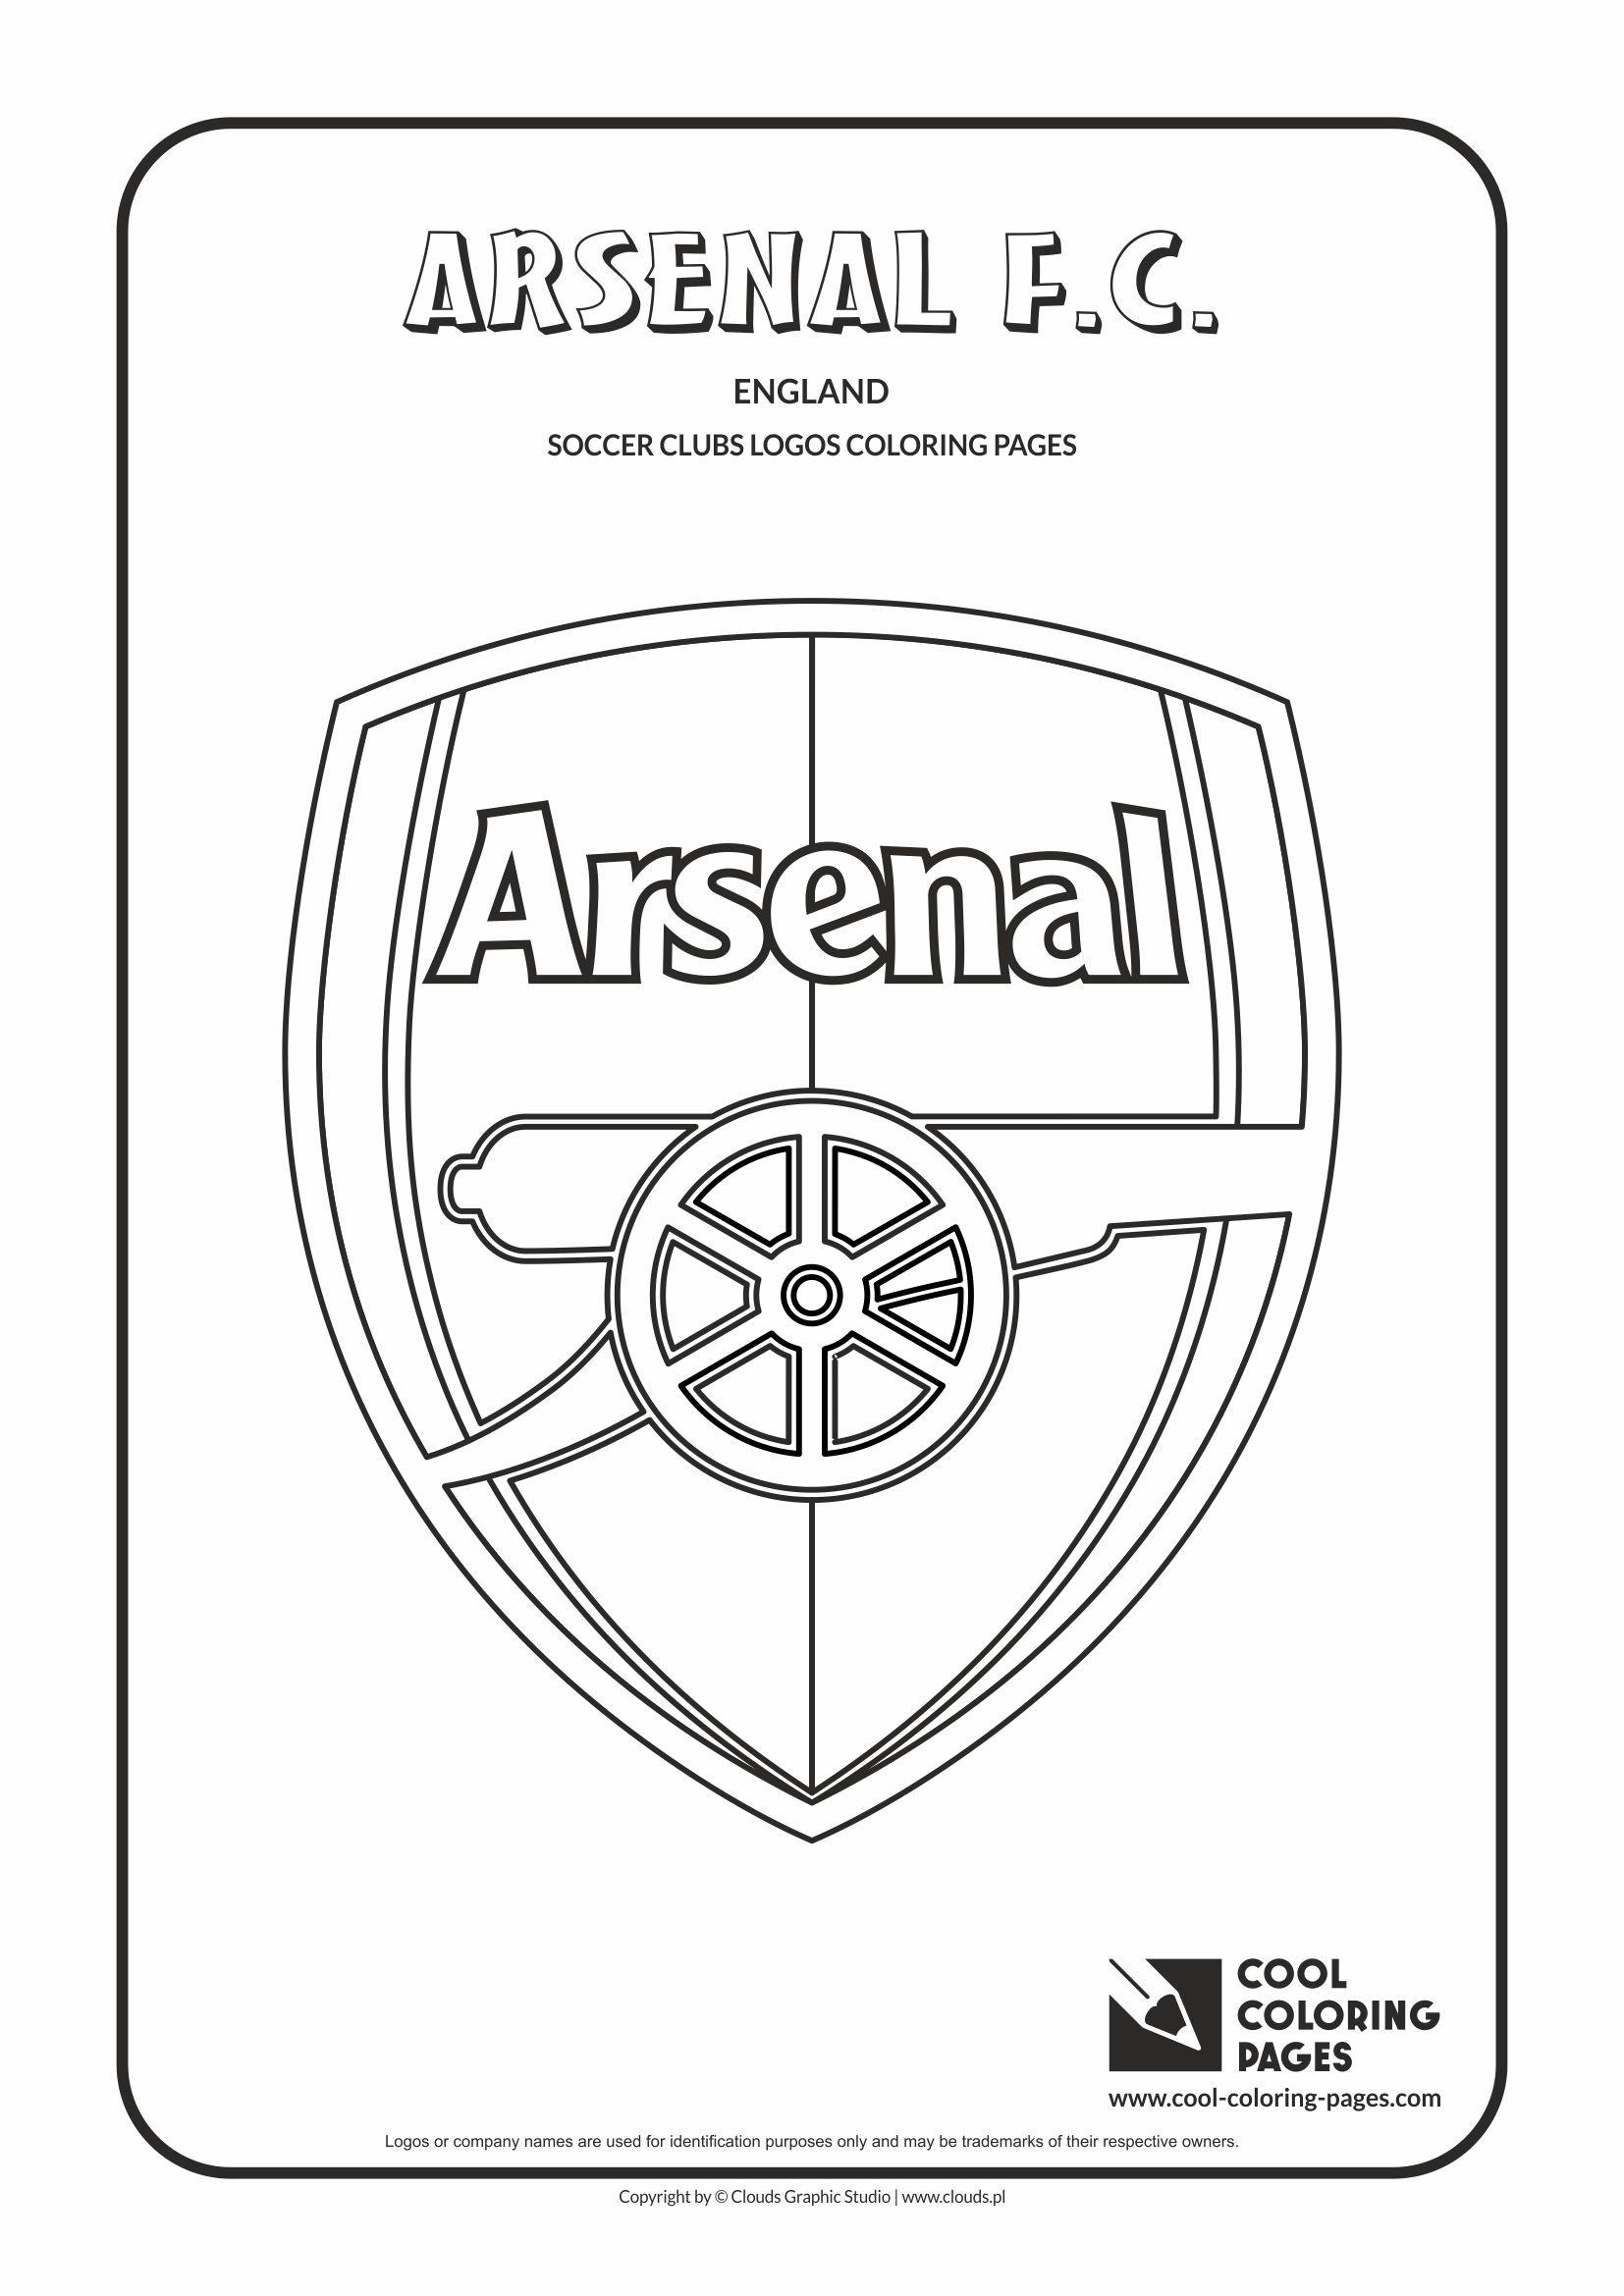 Arsenal F C Logo Coloring Page Cool Coloring Pages Coloring Pages Football Logo